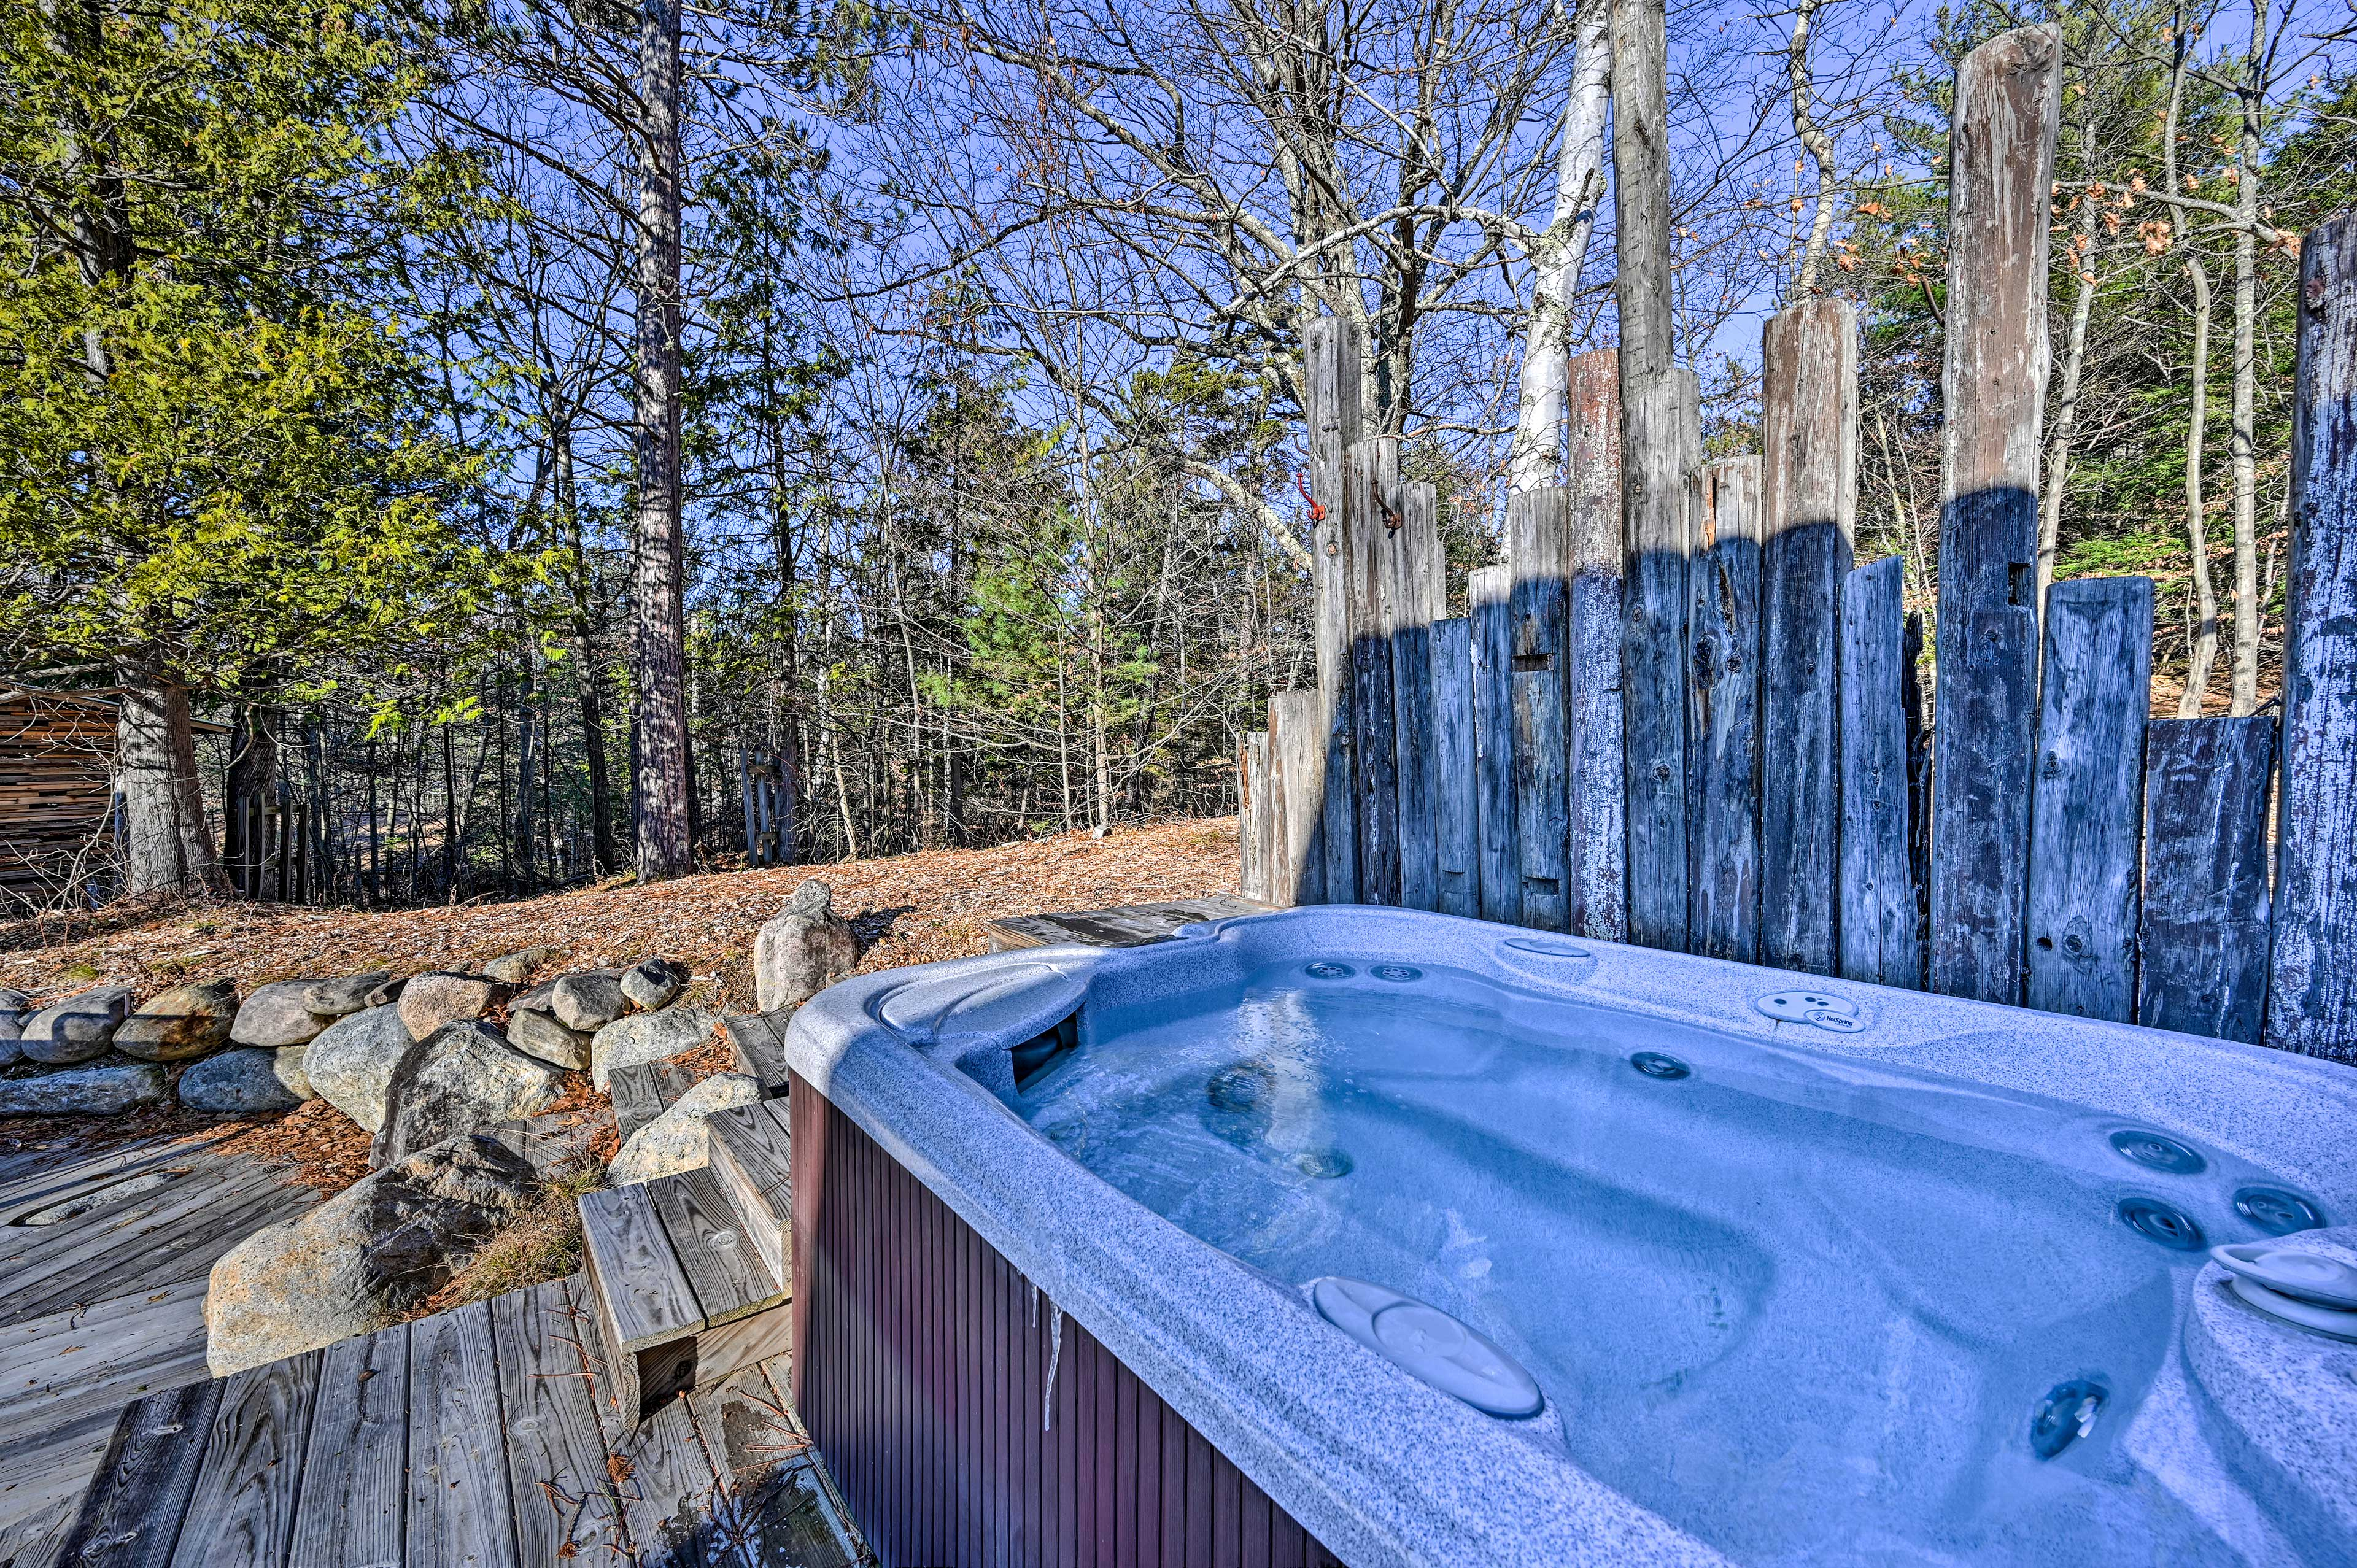 Soak sore skiing muscles in the private hot tub.